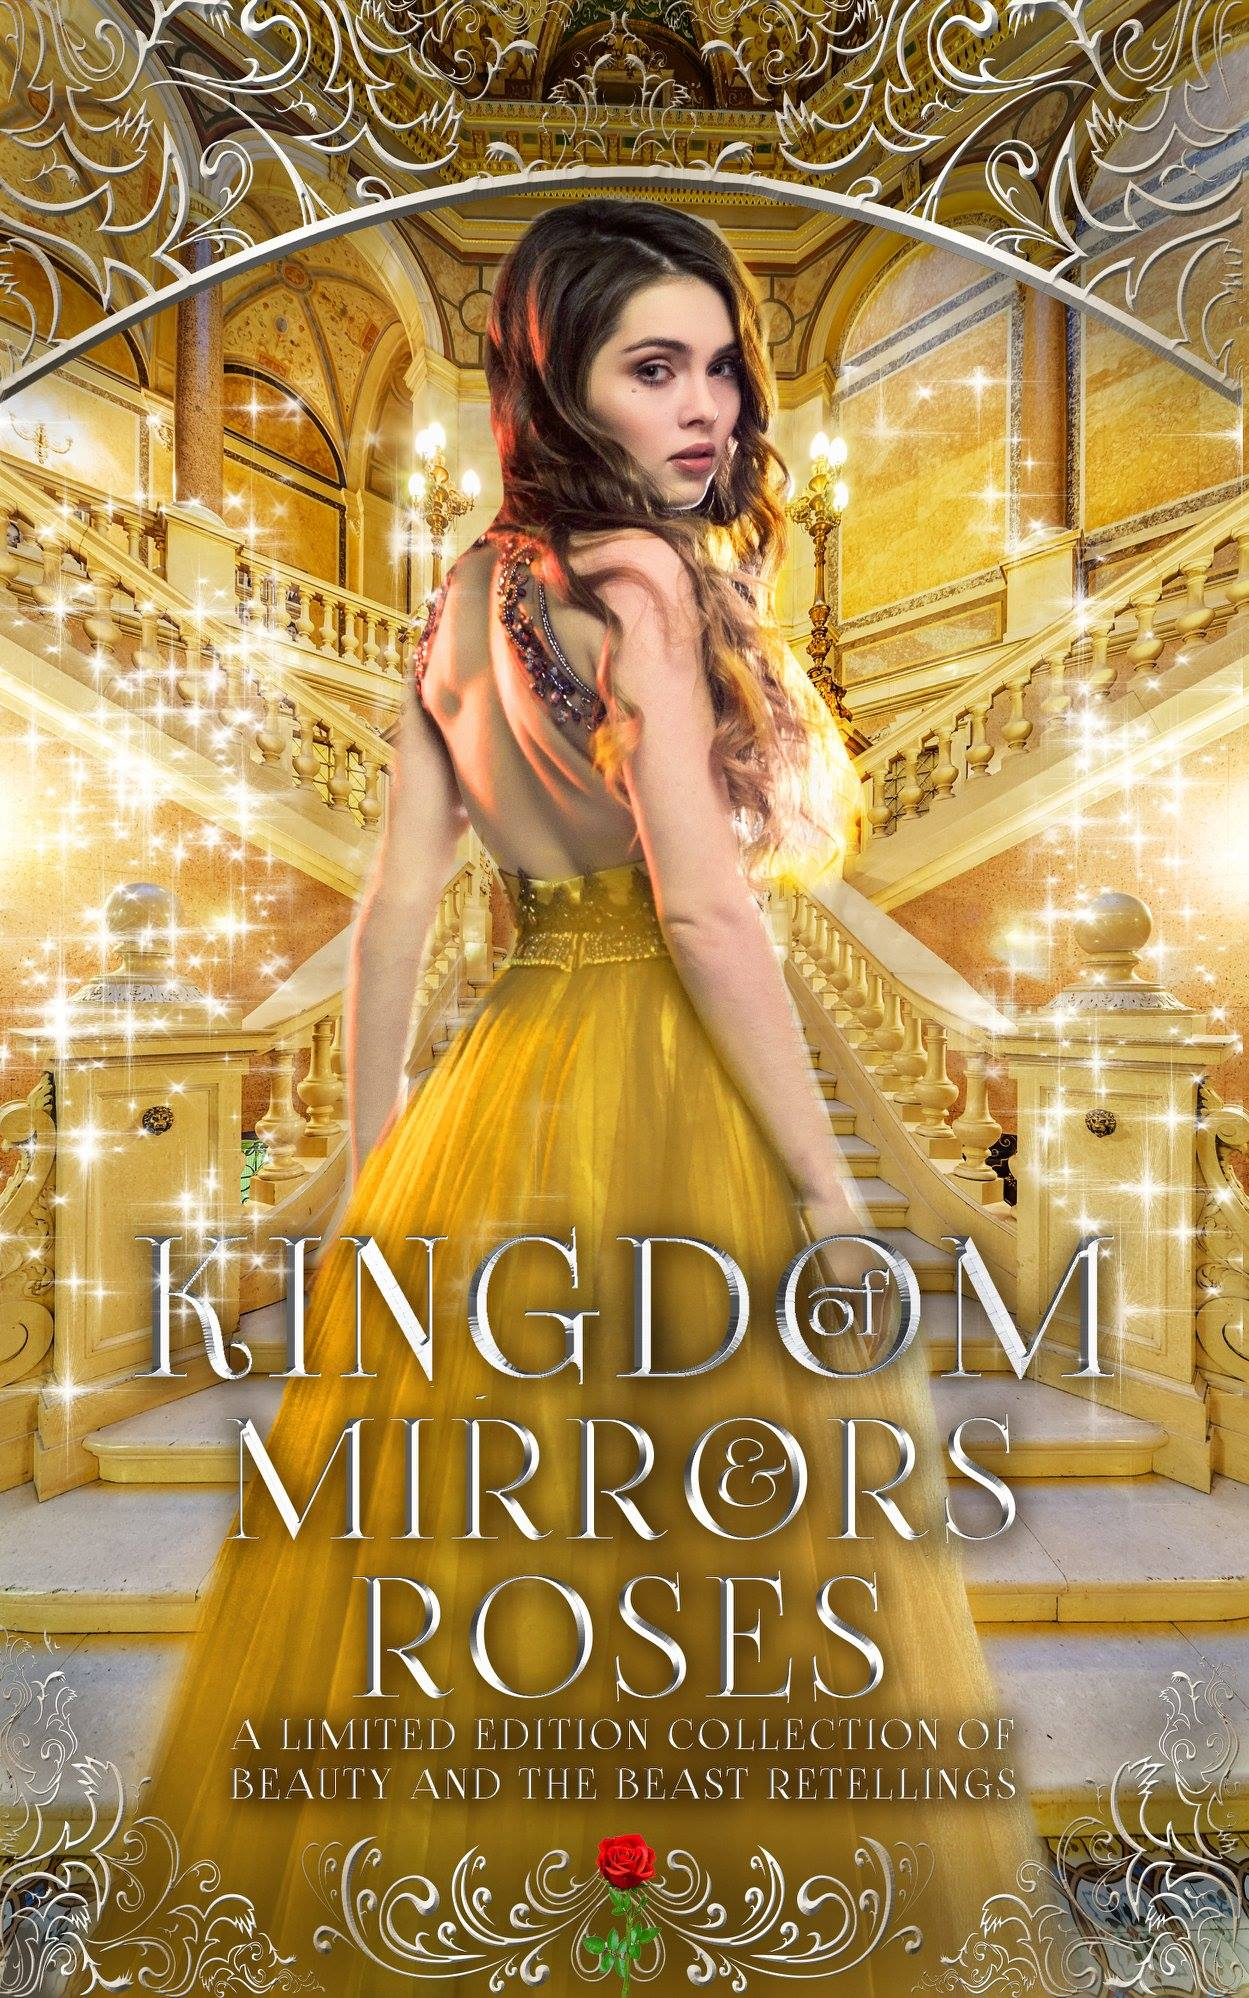 Kingdom of Mirrors & Roses: A Limited Edition of Beauty and the Beast Retellings